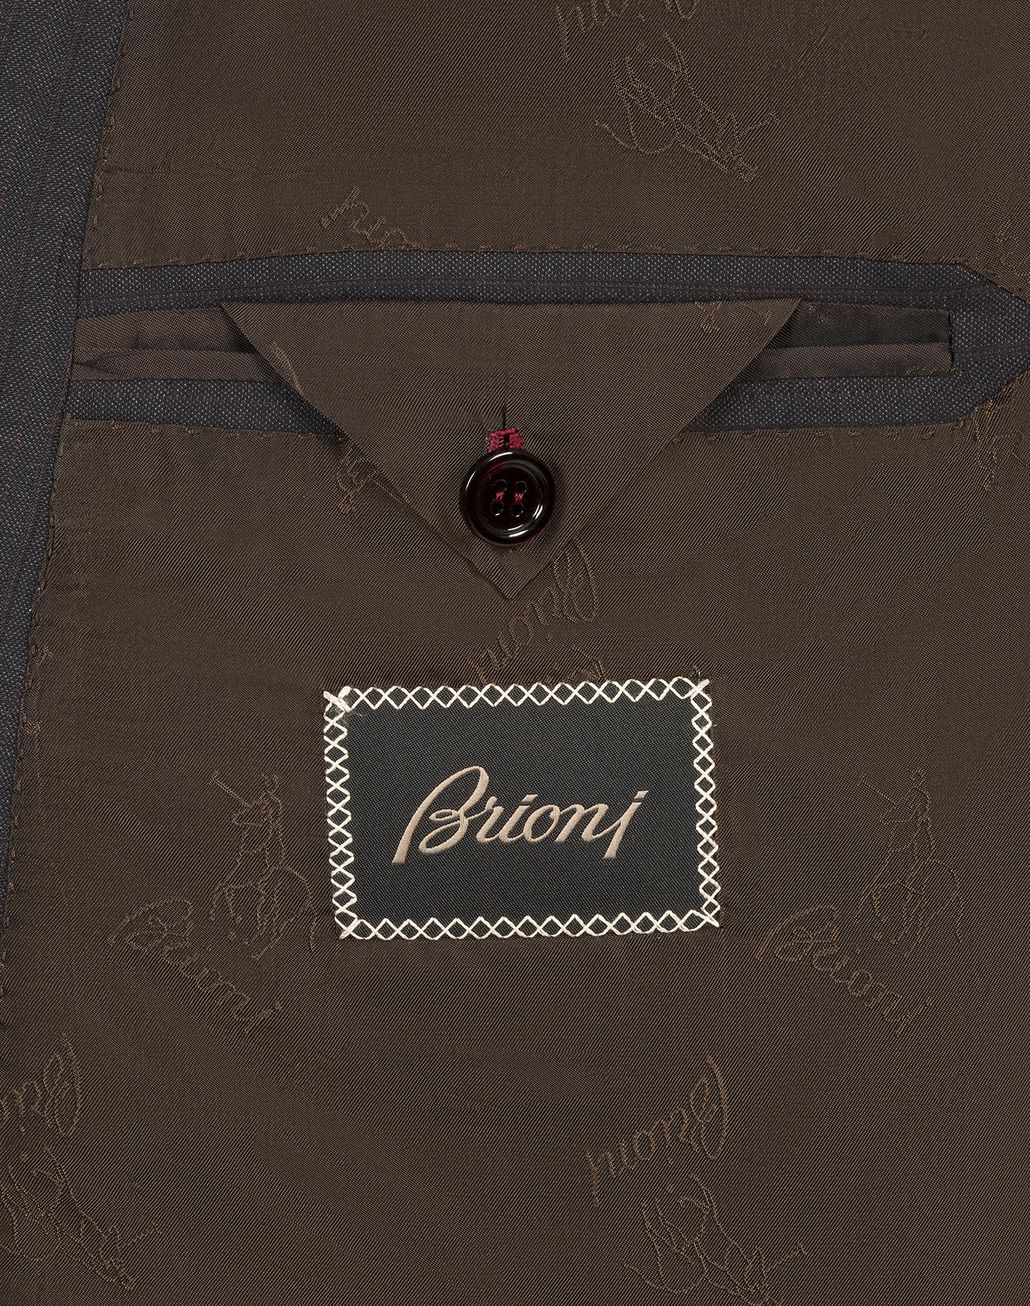 BRIONI Grey and Dark Brown Striped Madison Double Breasted Suit Suits & Jackets Man b